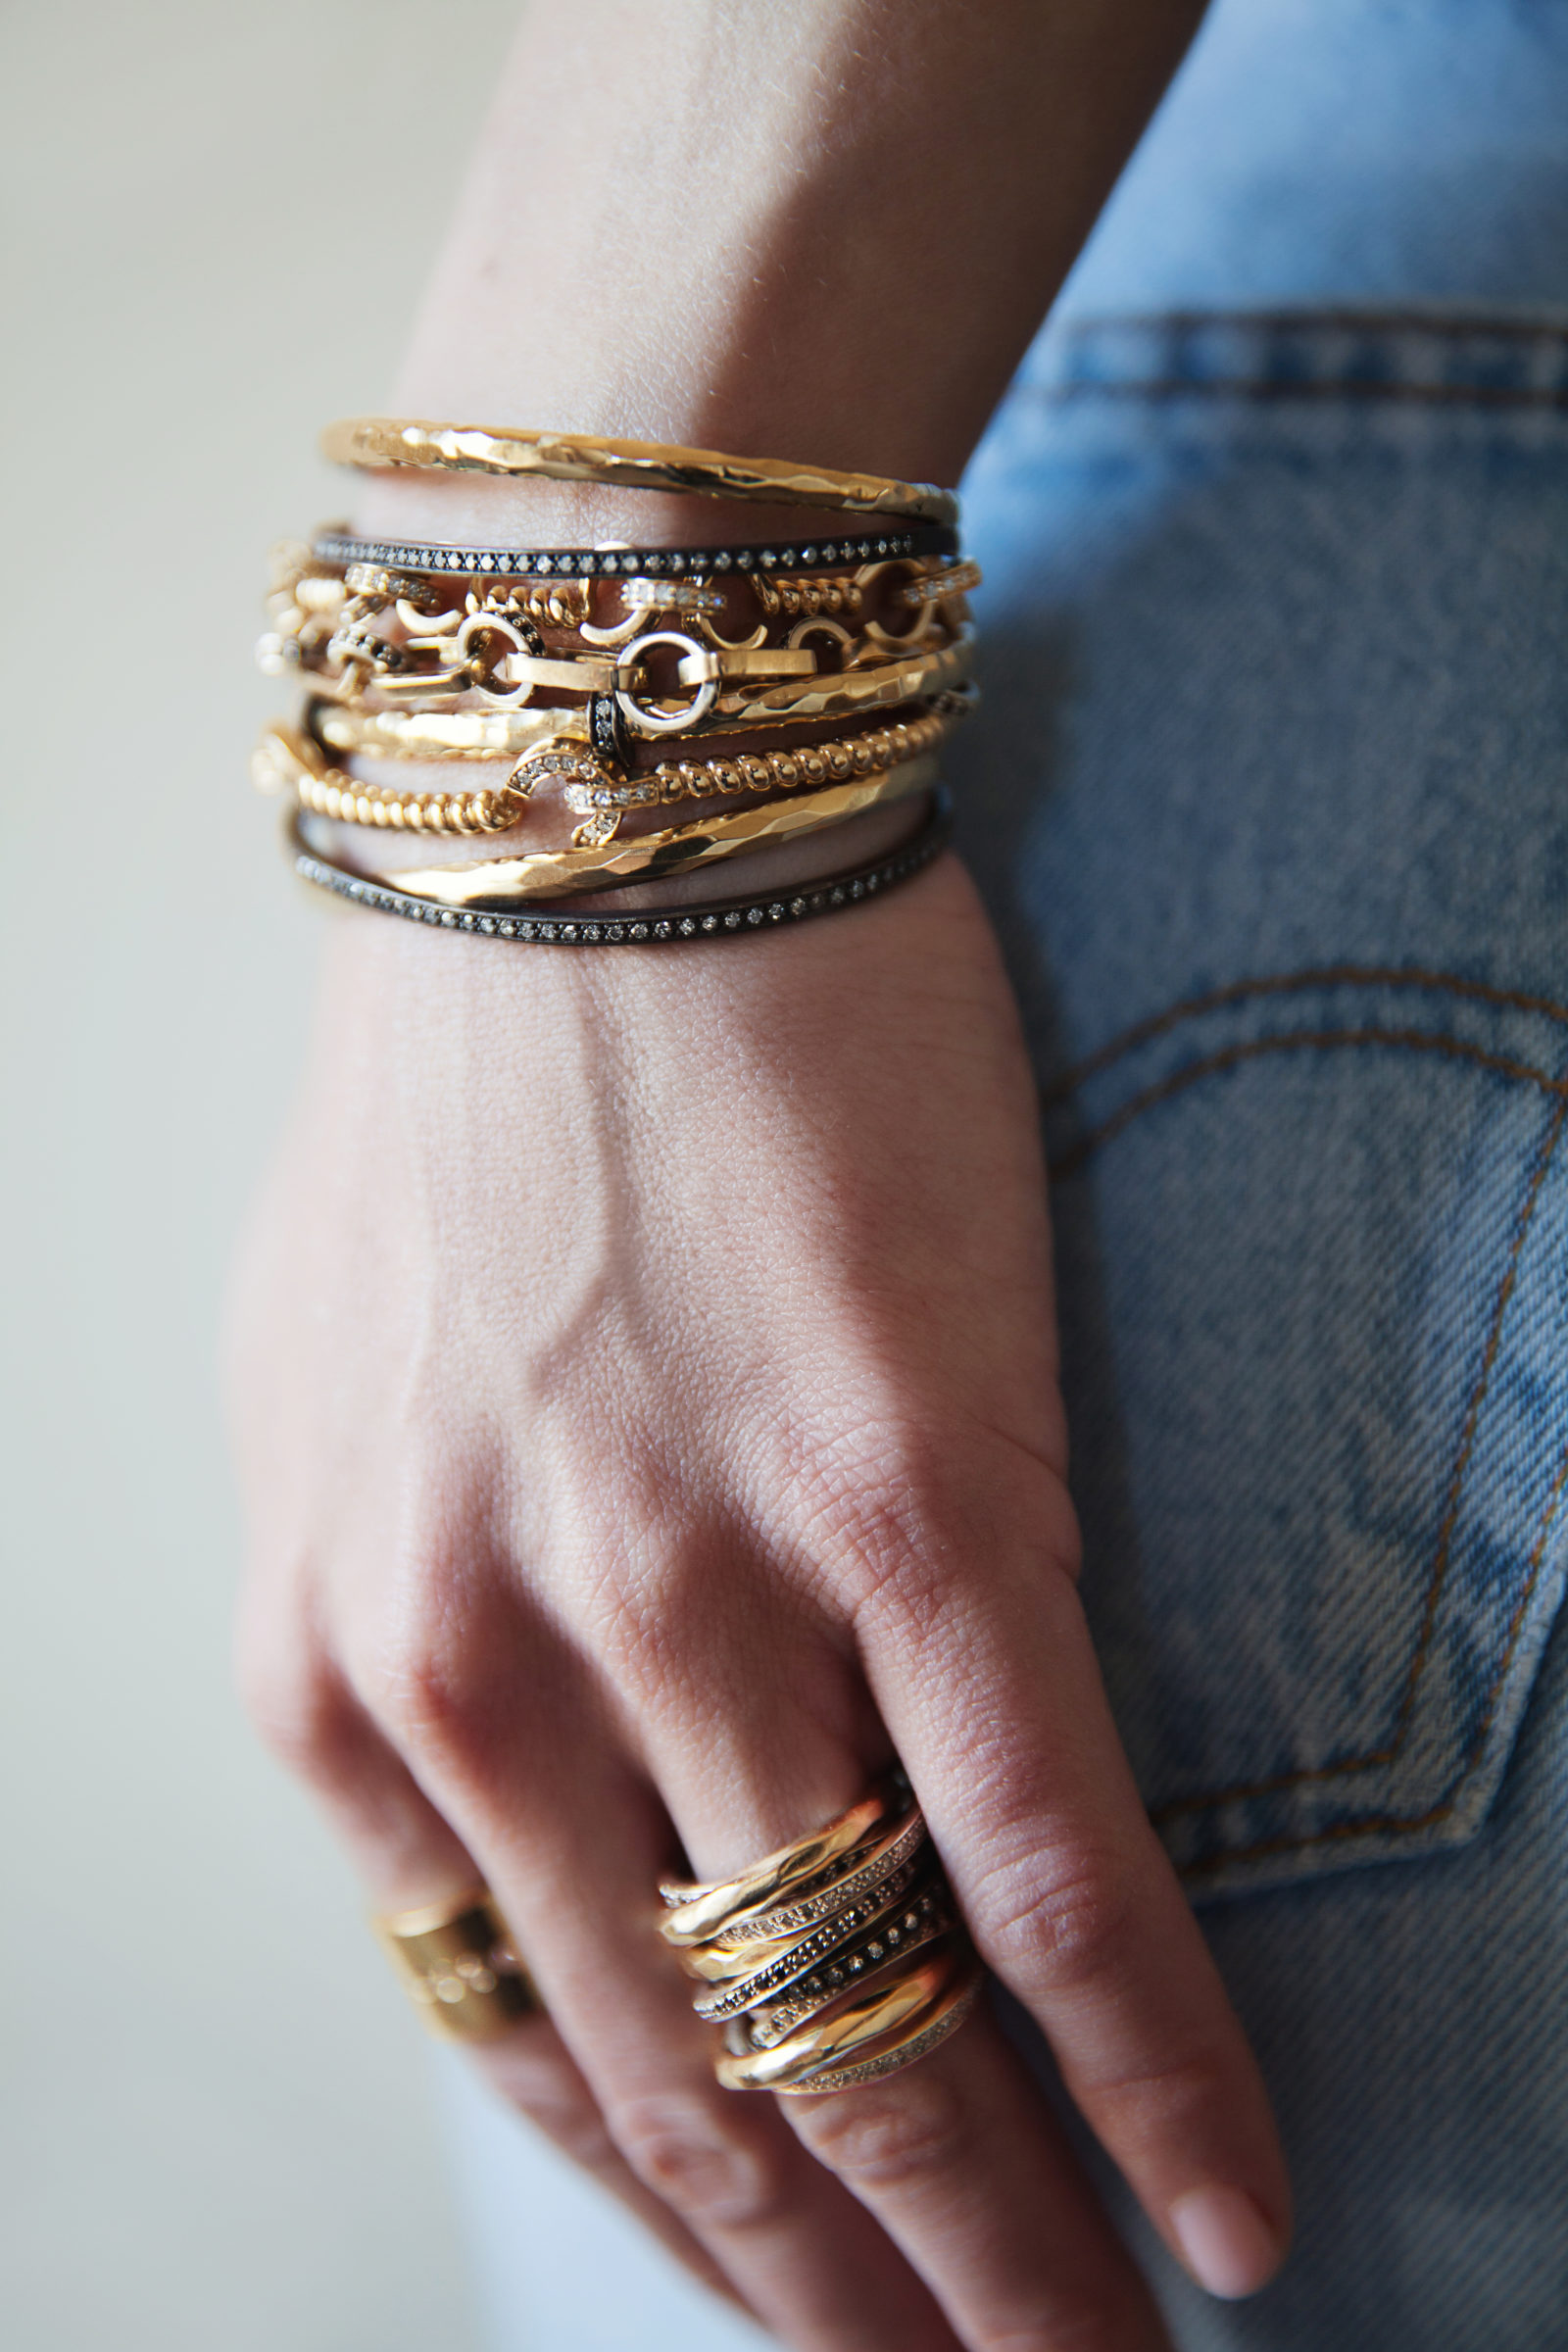 Stacked bracelets as mother's day gifts that give back